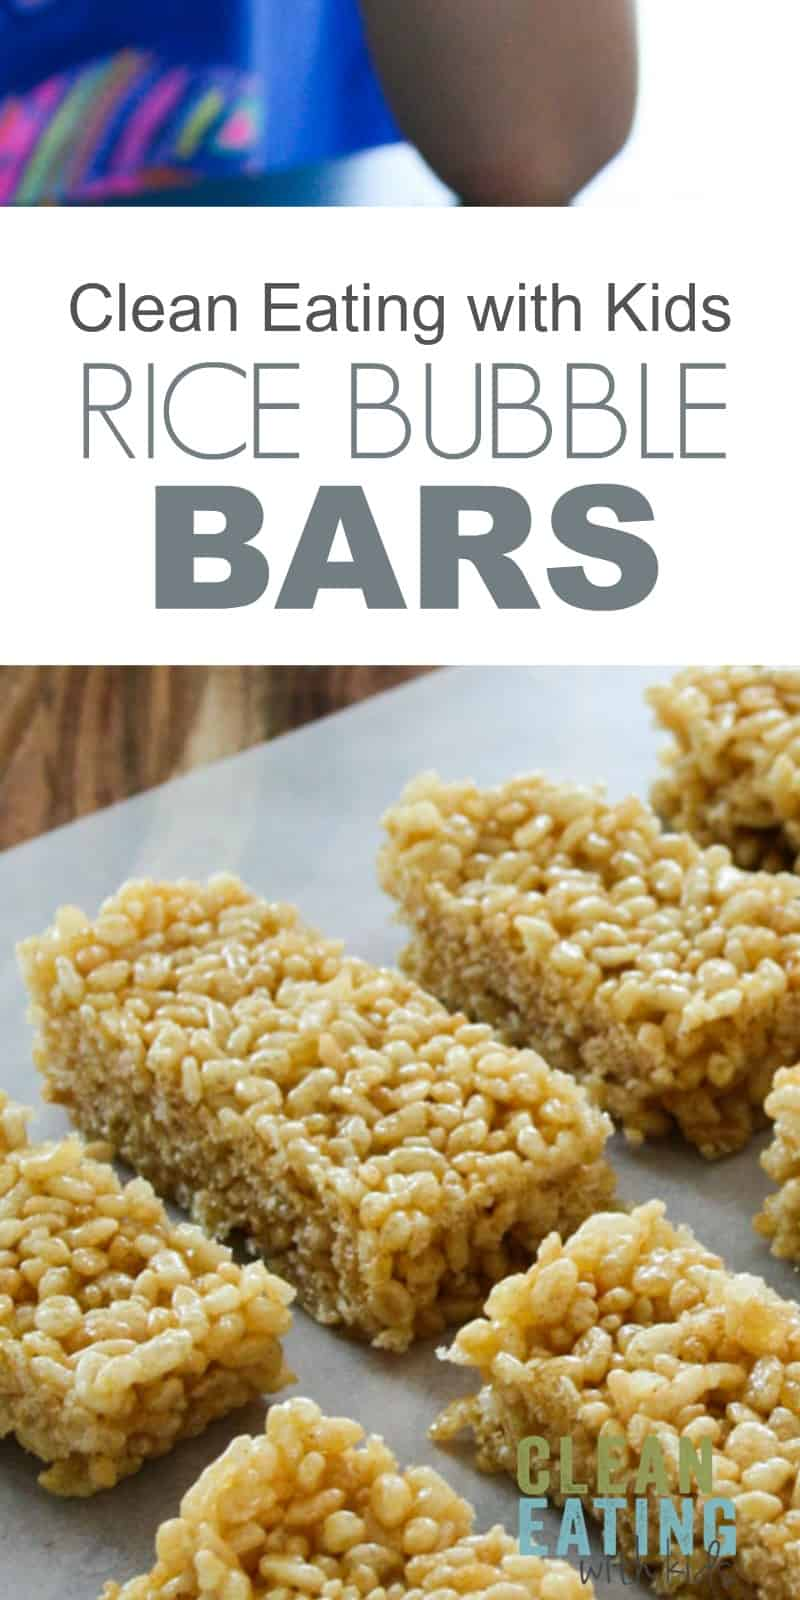 Clean Eating Rice Krispie Treats - 3 Ingredient No Bake Healthy Rice Krispy Treats- Just three ingredients and only takes 5 minutes to make. CleanEatingWithKids.com